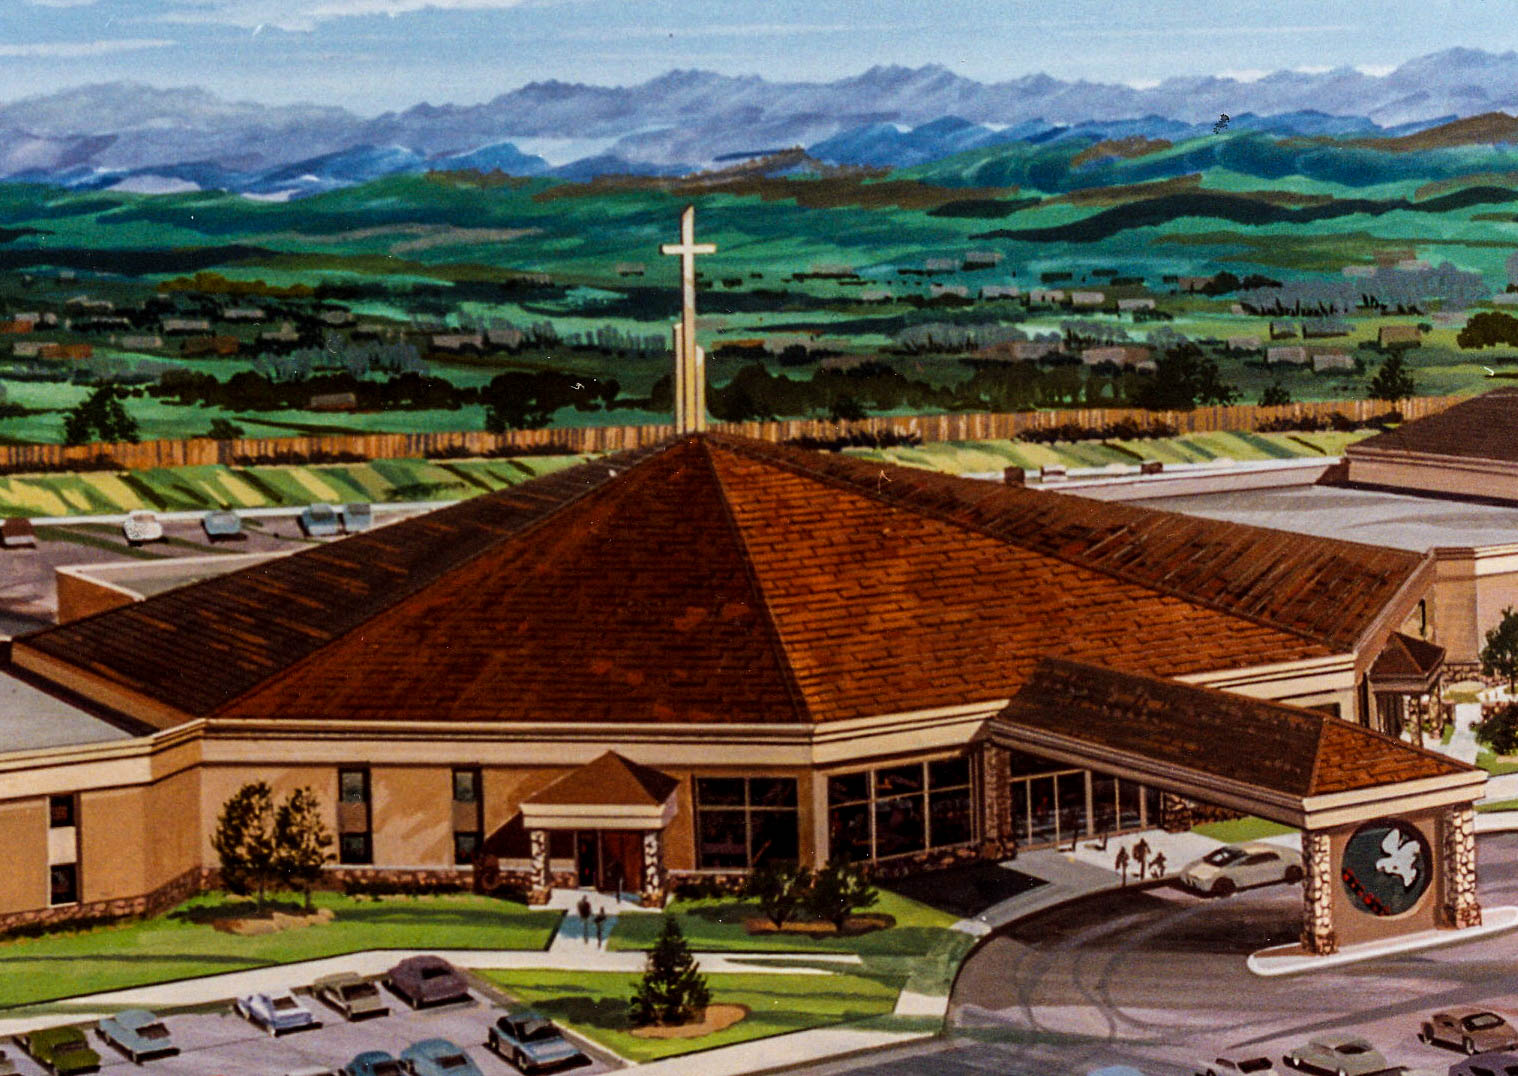 Word of Life Christian Center. Lonetree, CO